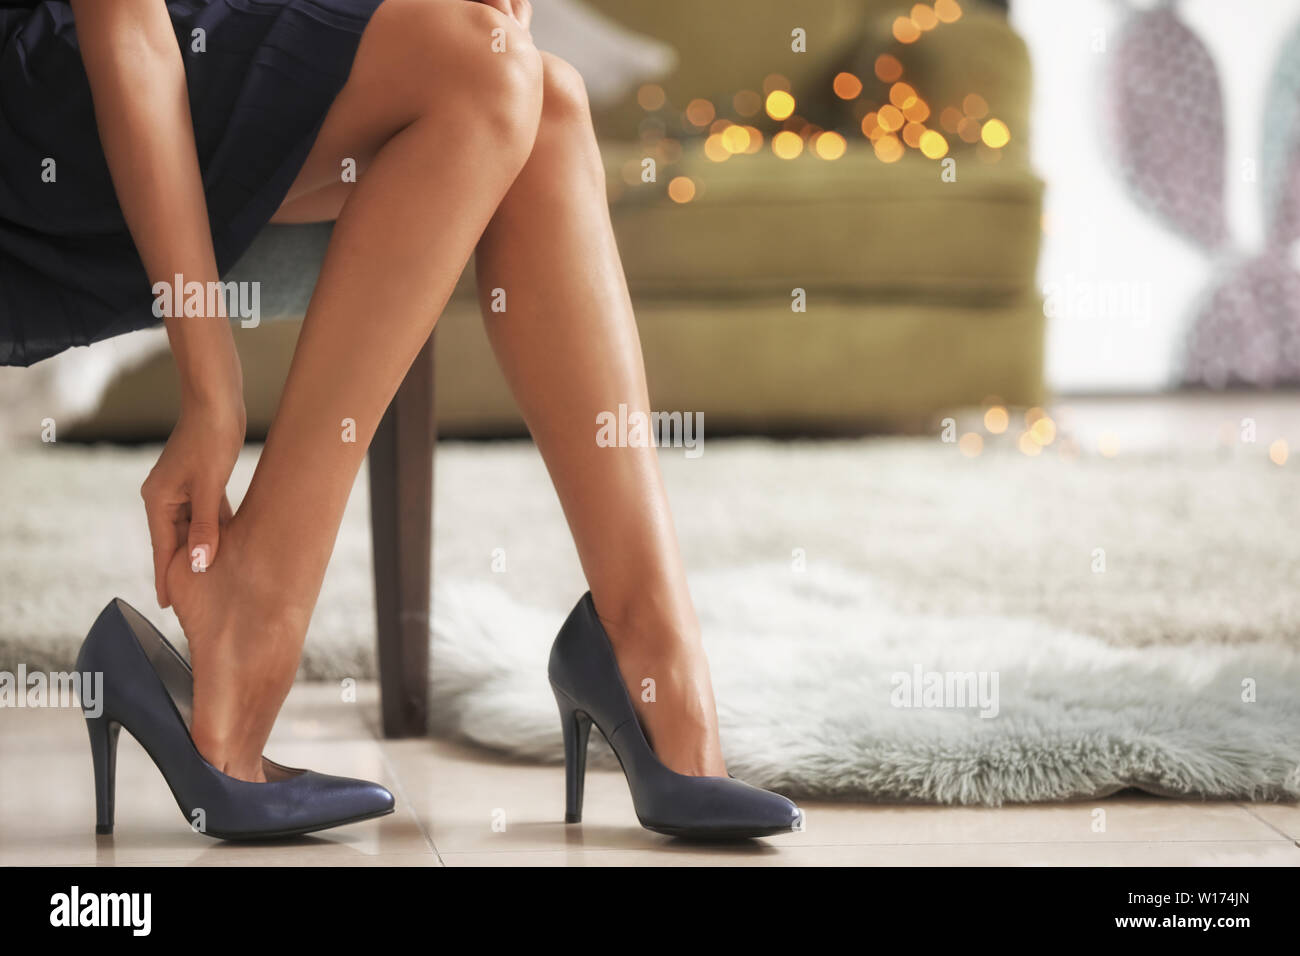 asion high heels chat rooms